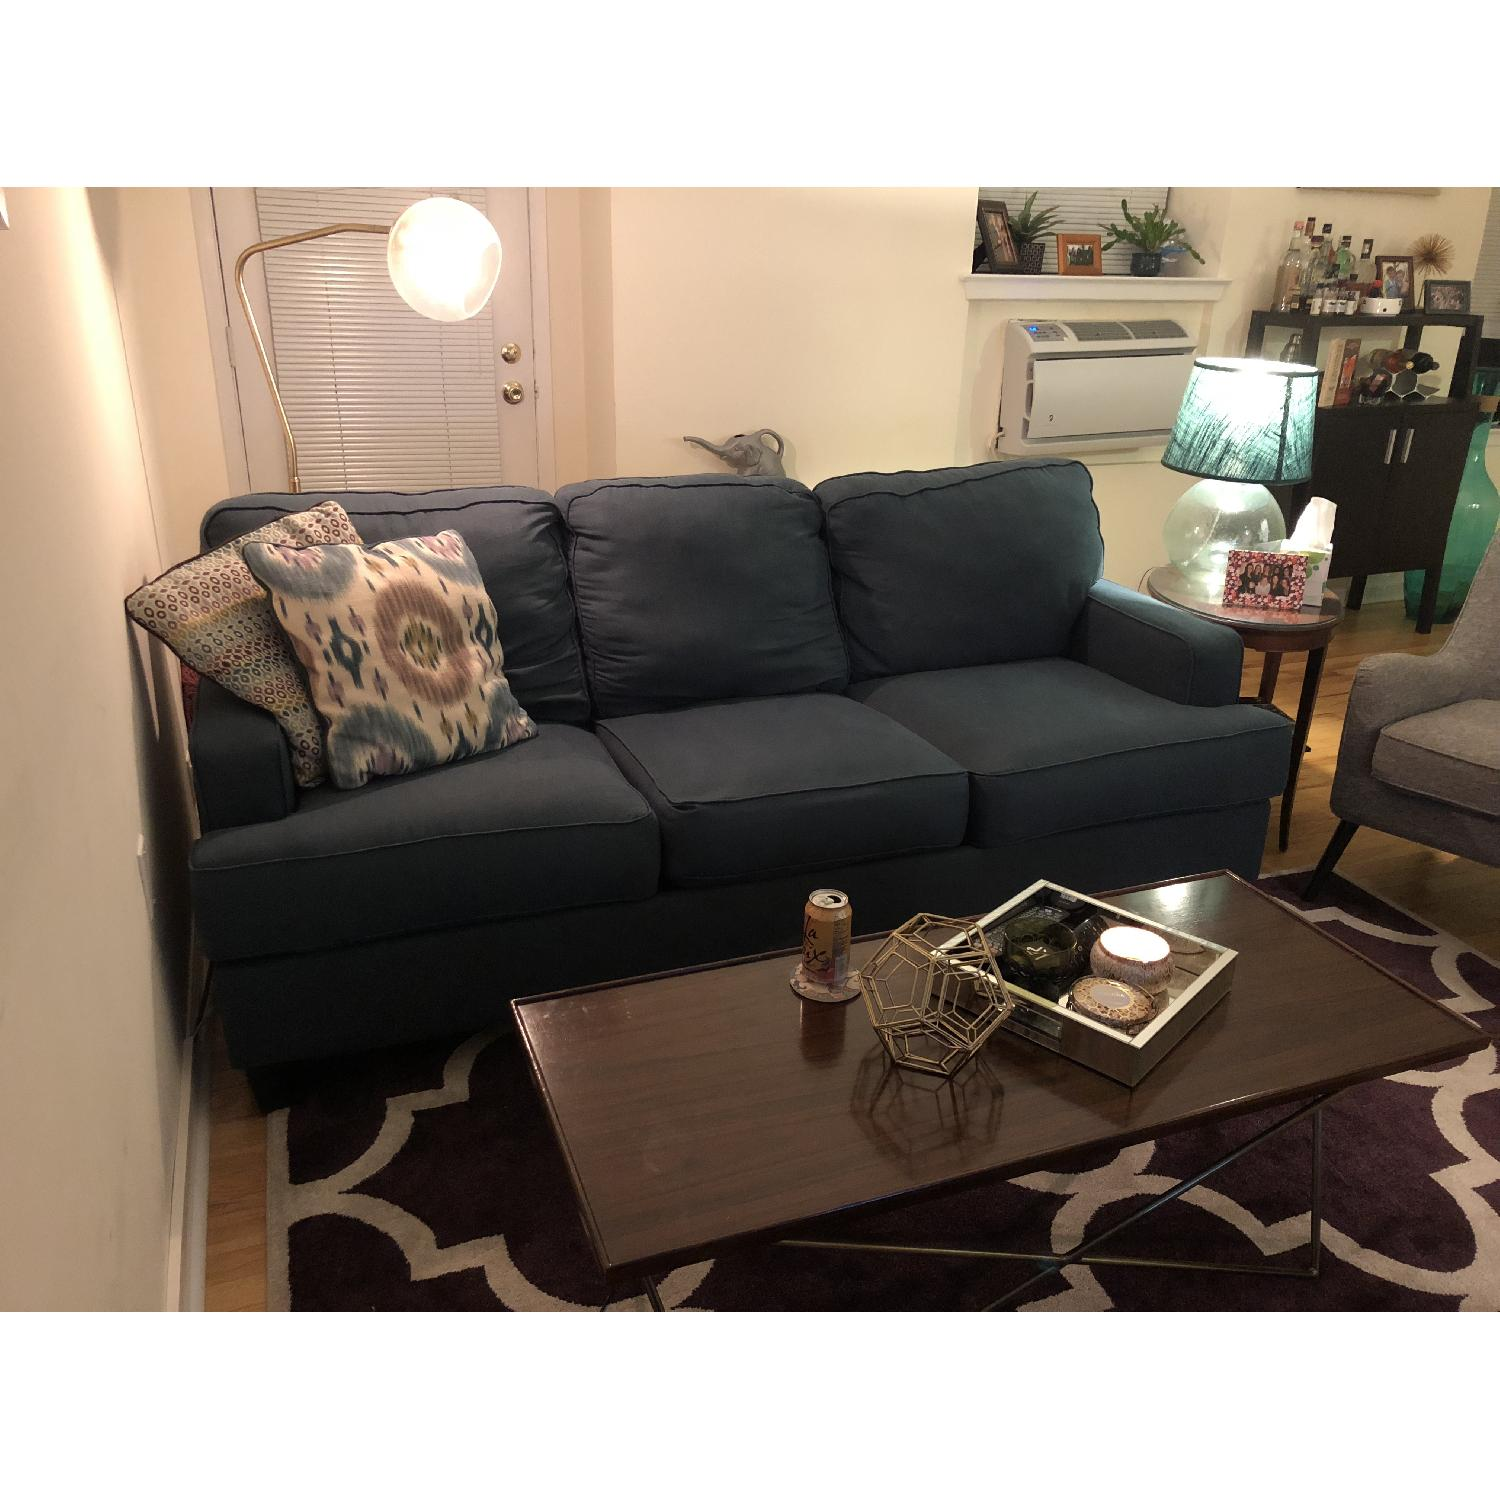 Teal Fabric Apartment-Sized Couch - AptDeco